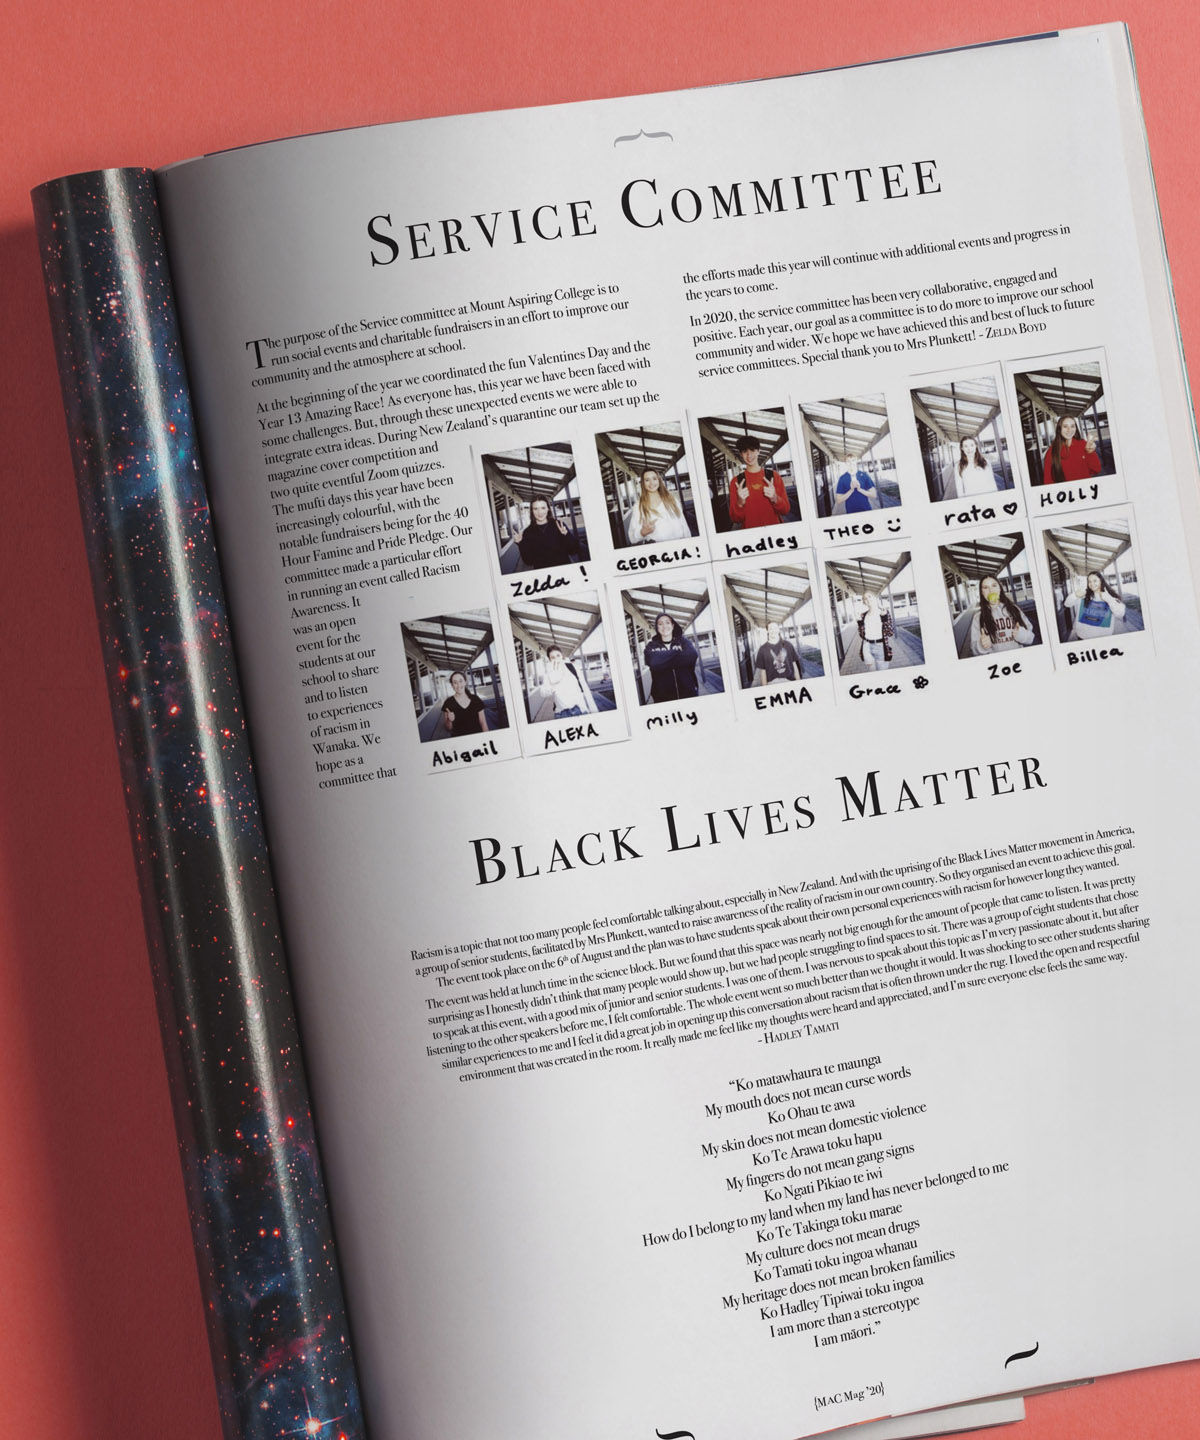 MAC Magazine Service Committee page